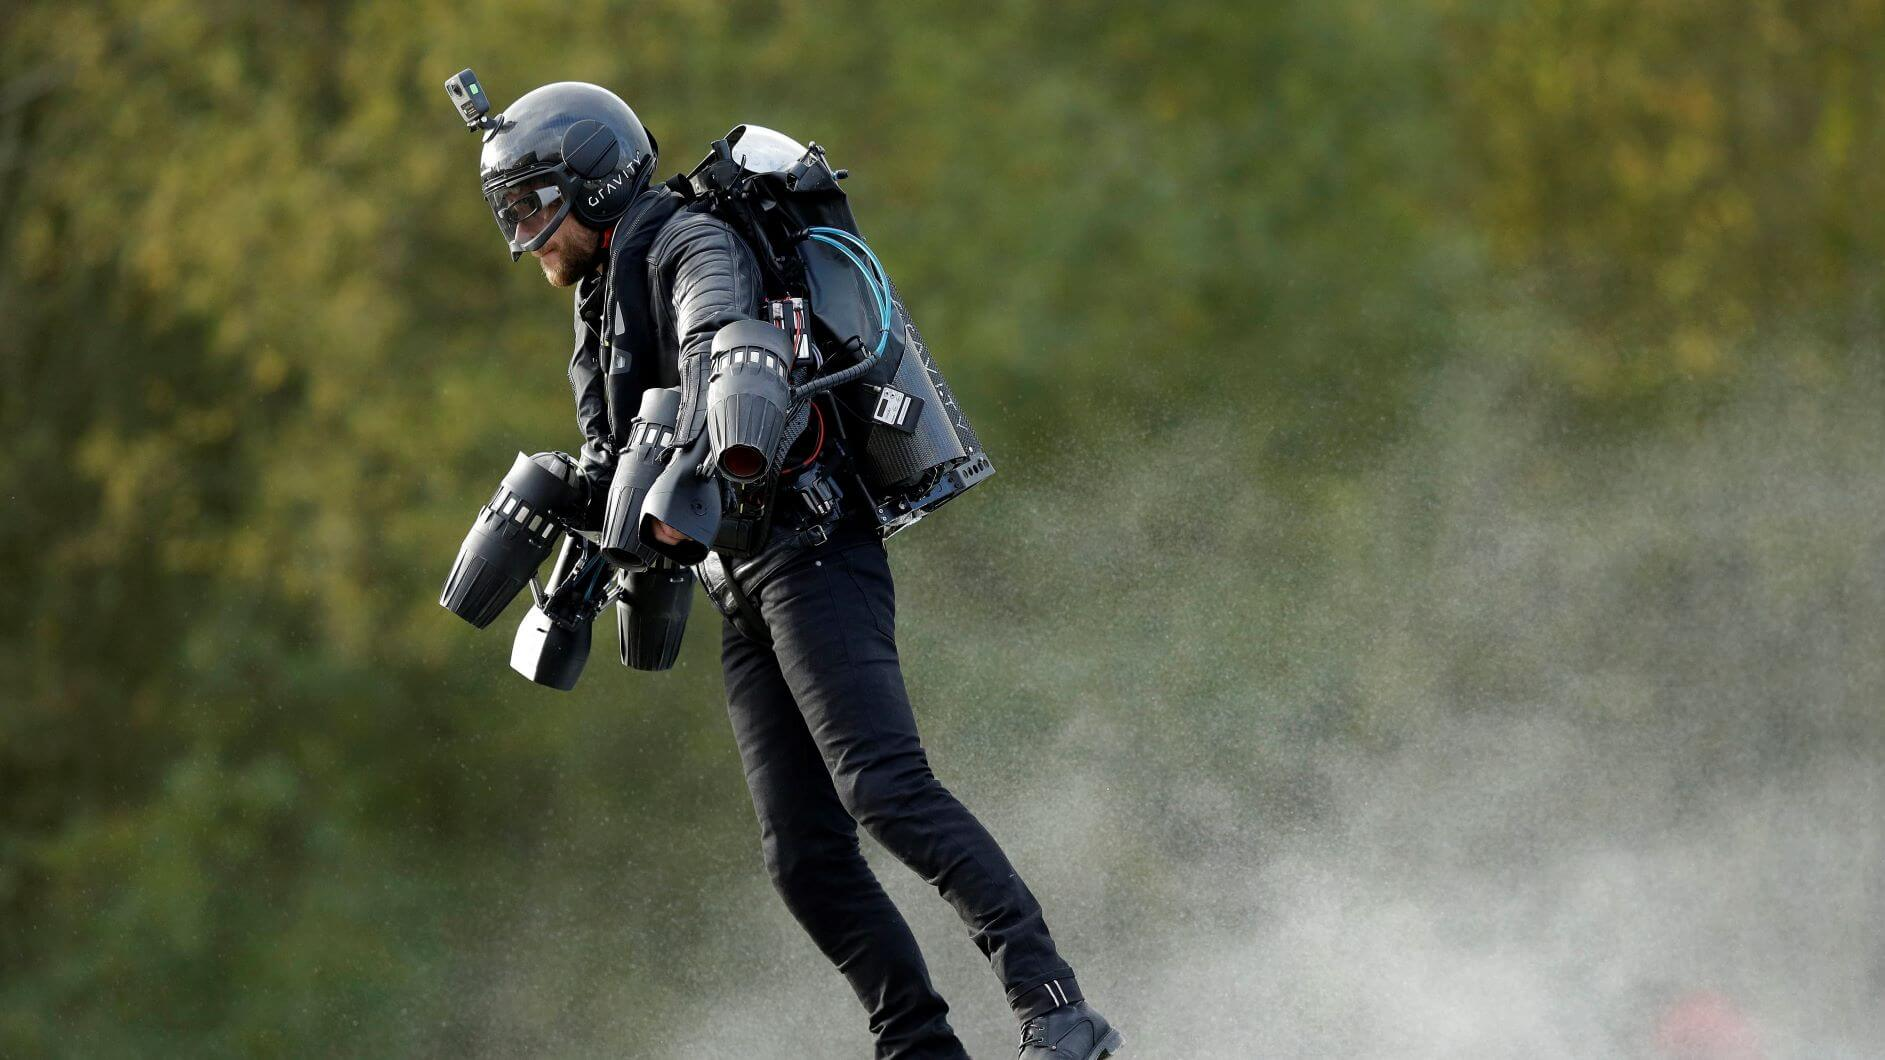 World First 'Jet Suit' Patented By British Firm